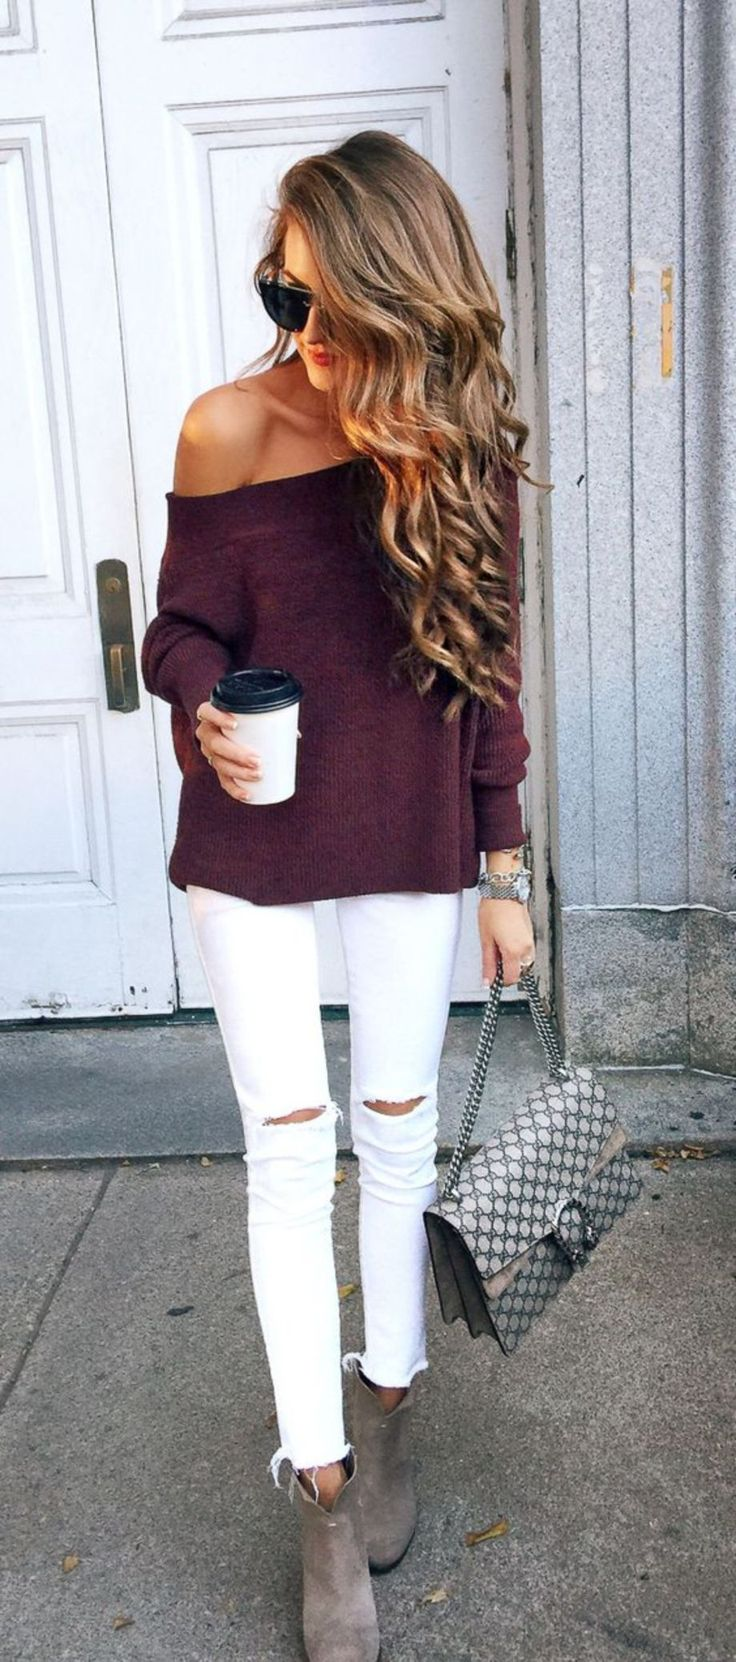 Amazing 69 Stunning Thanksgiving Outfits Ideas from https://www.fashionetter.com/2017/07/18/69-stunning-thanksgiving-outfits-ideas/